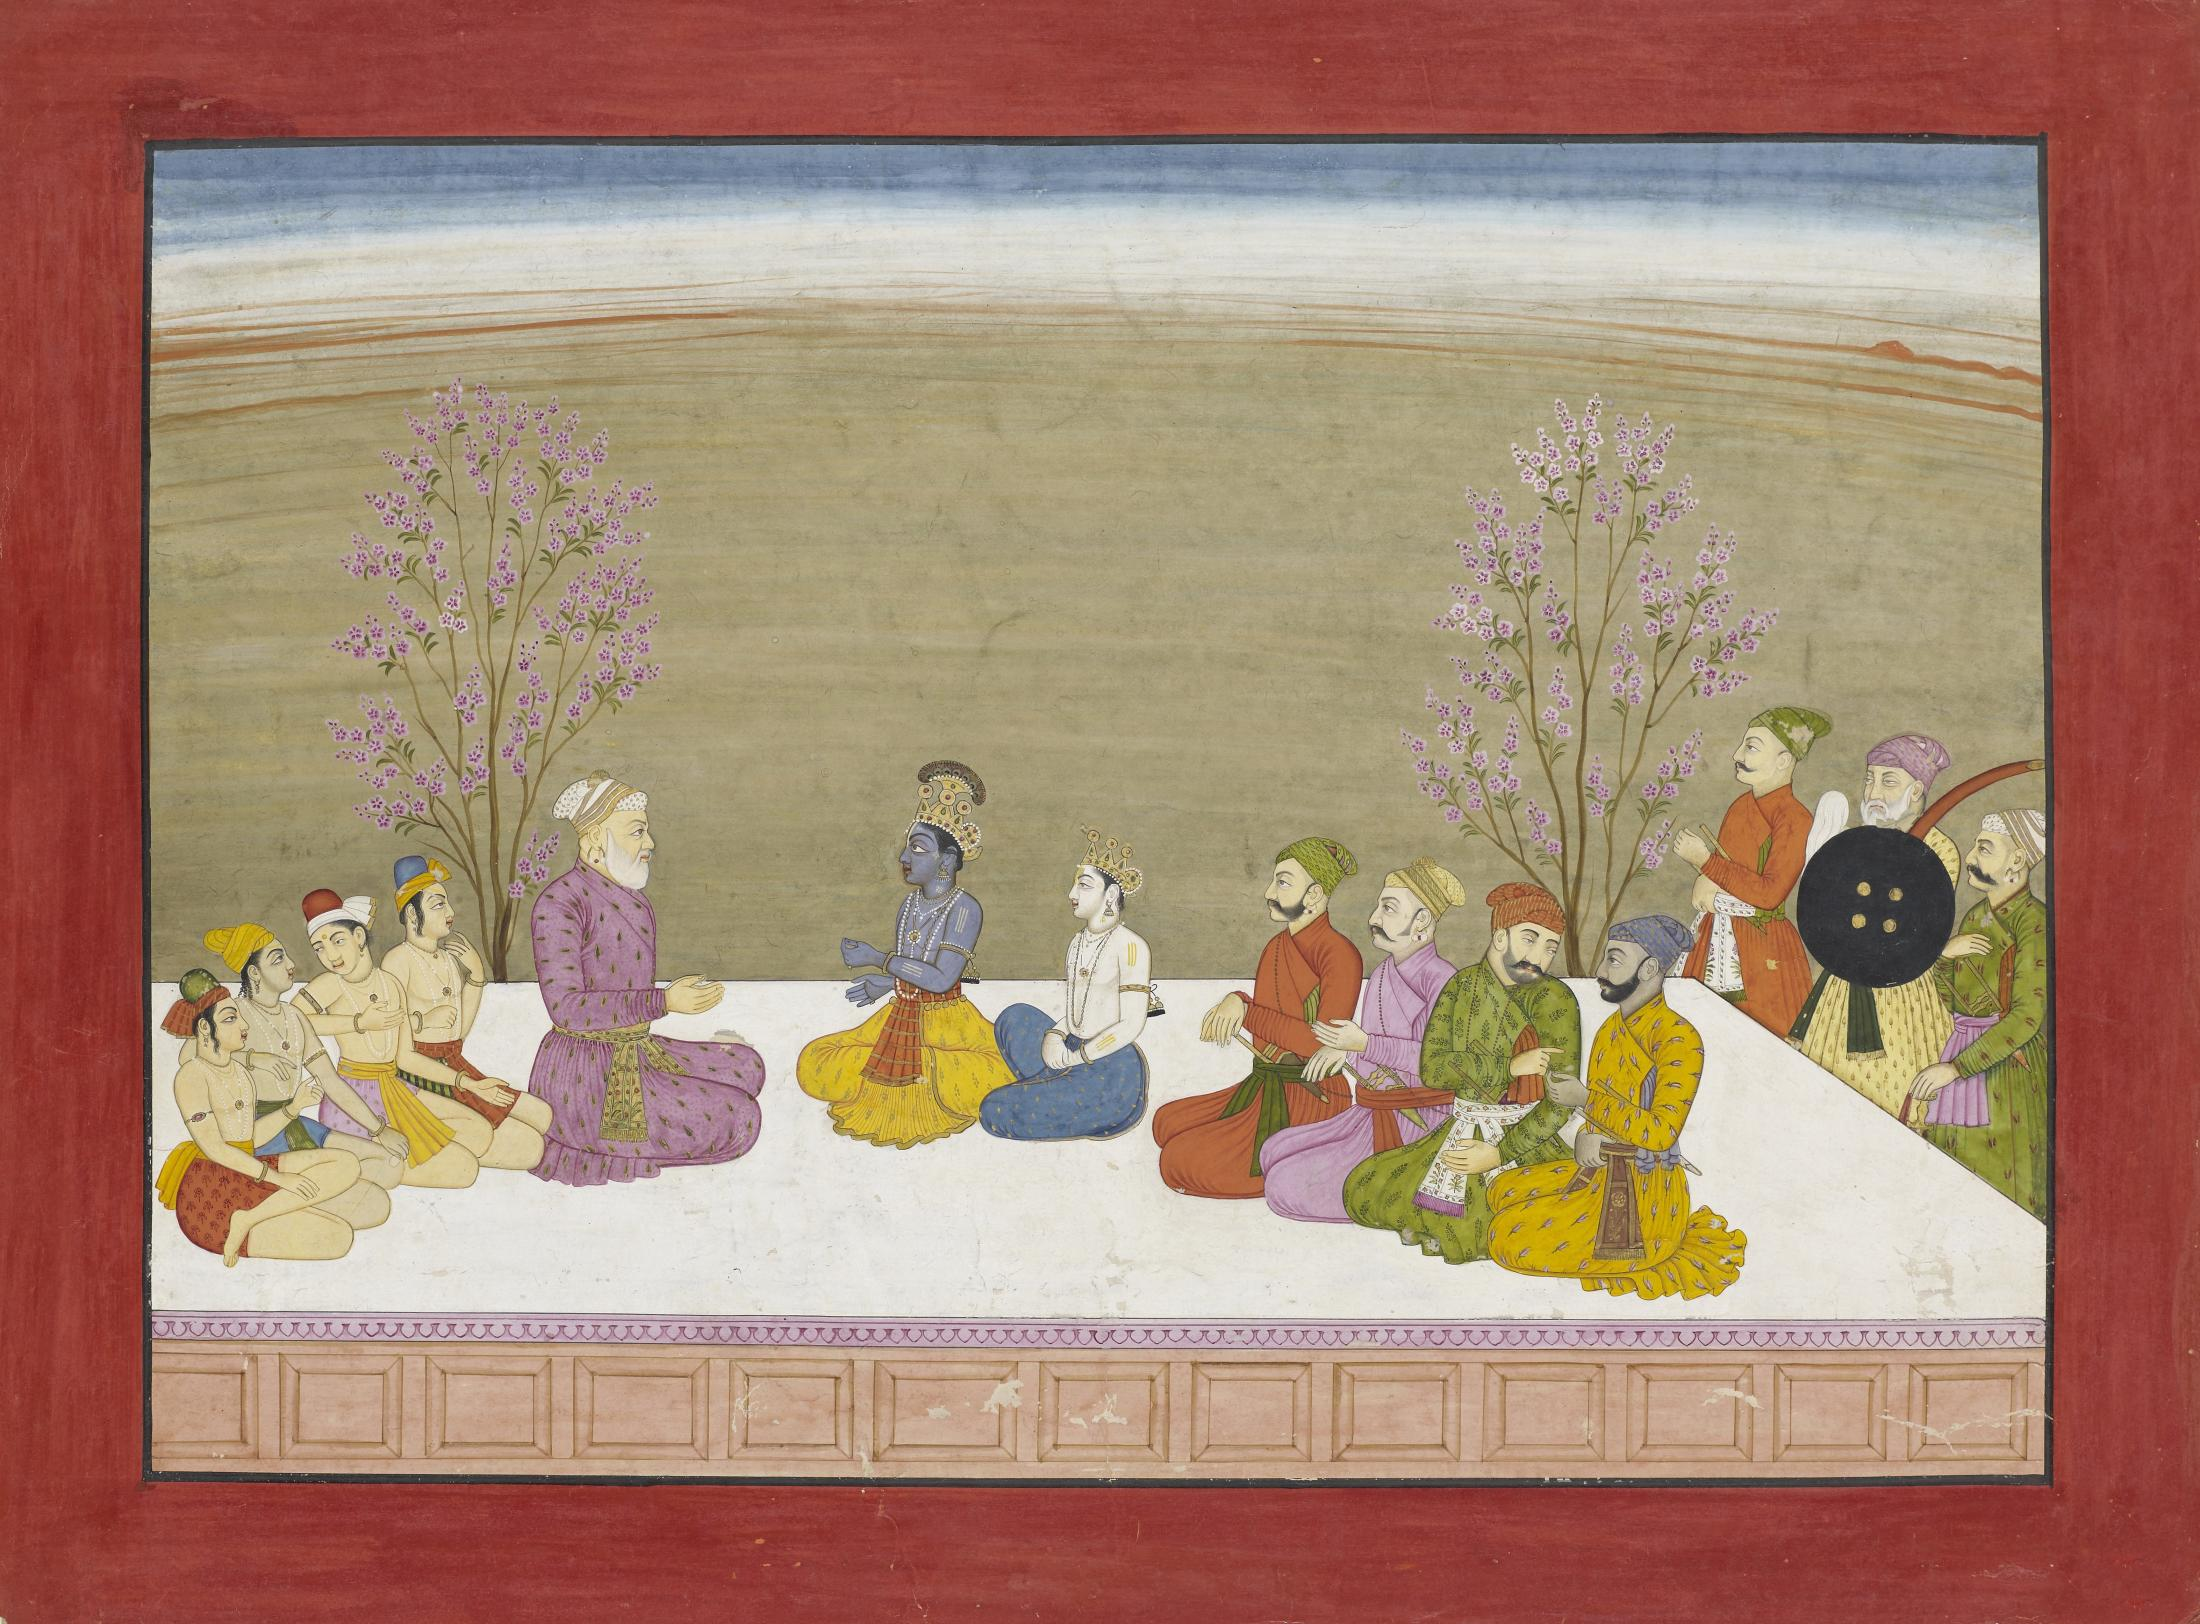 Illustration from the 'Large Basohli Bhagavata Purana' series, also known as the 'Fifth Basohli Bhagavata Purana'